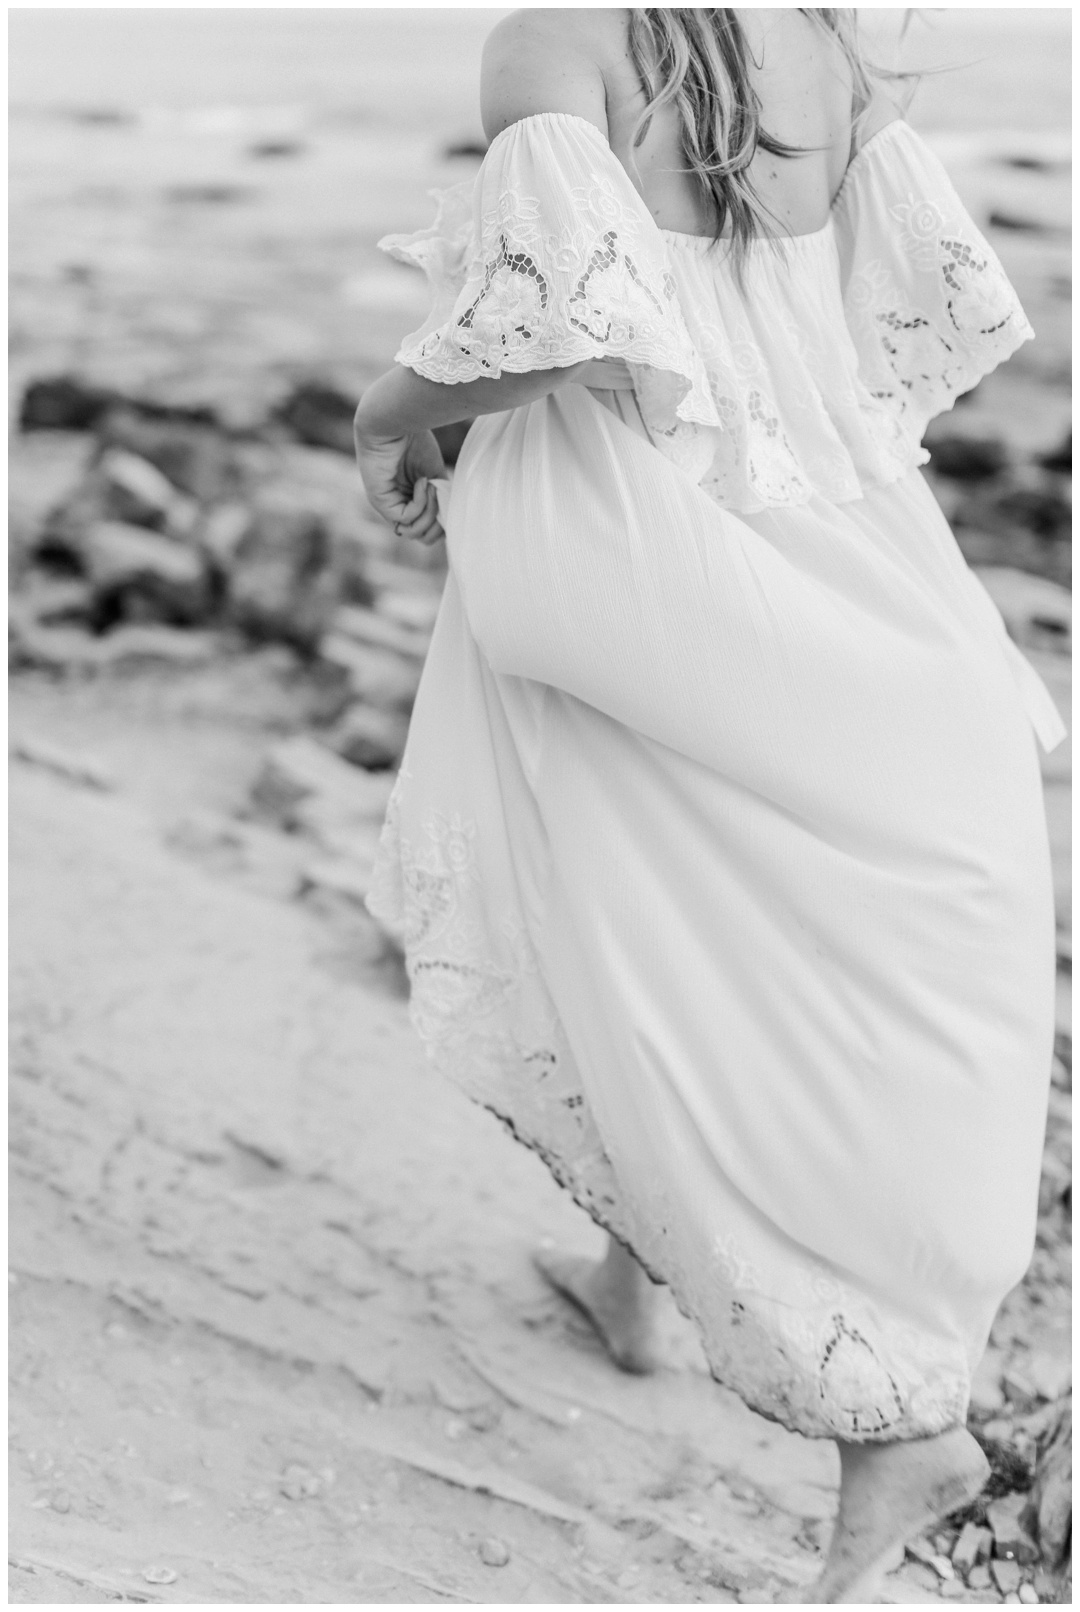 Newport_Beach_Maternity_Photographer_Beach_Maternity_Photography_Cori_Kleckner_Photography_1036.jpg